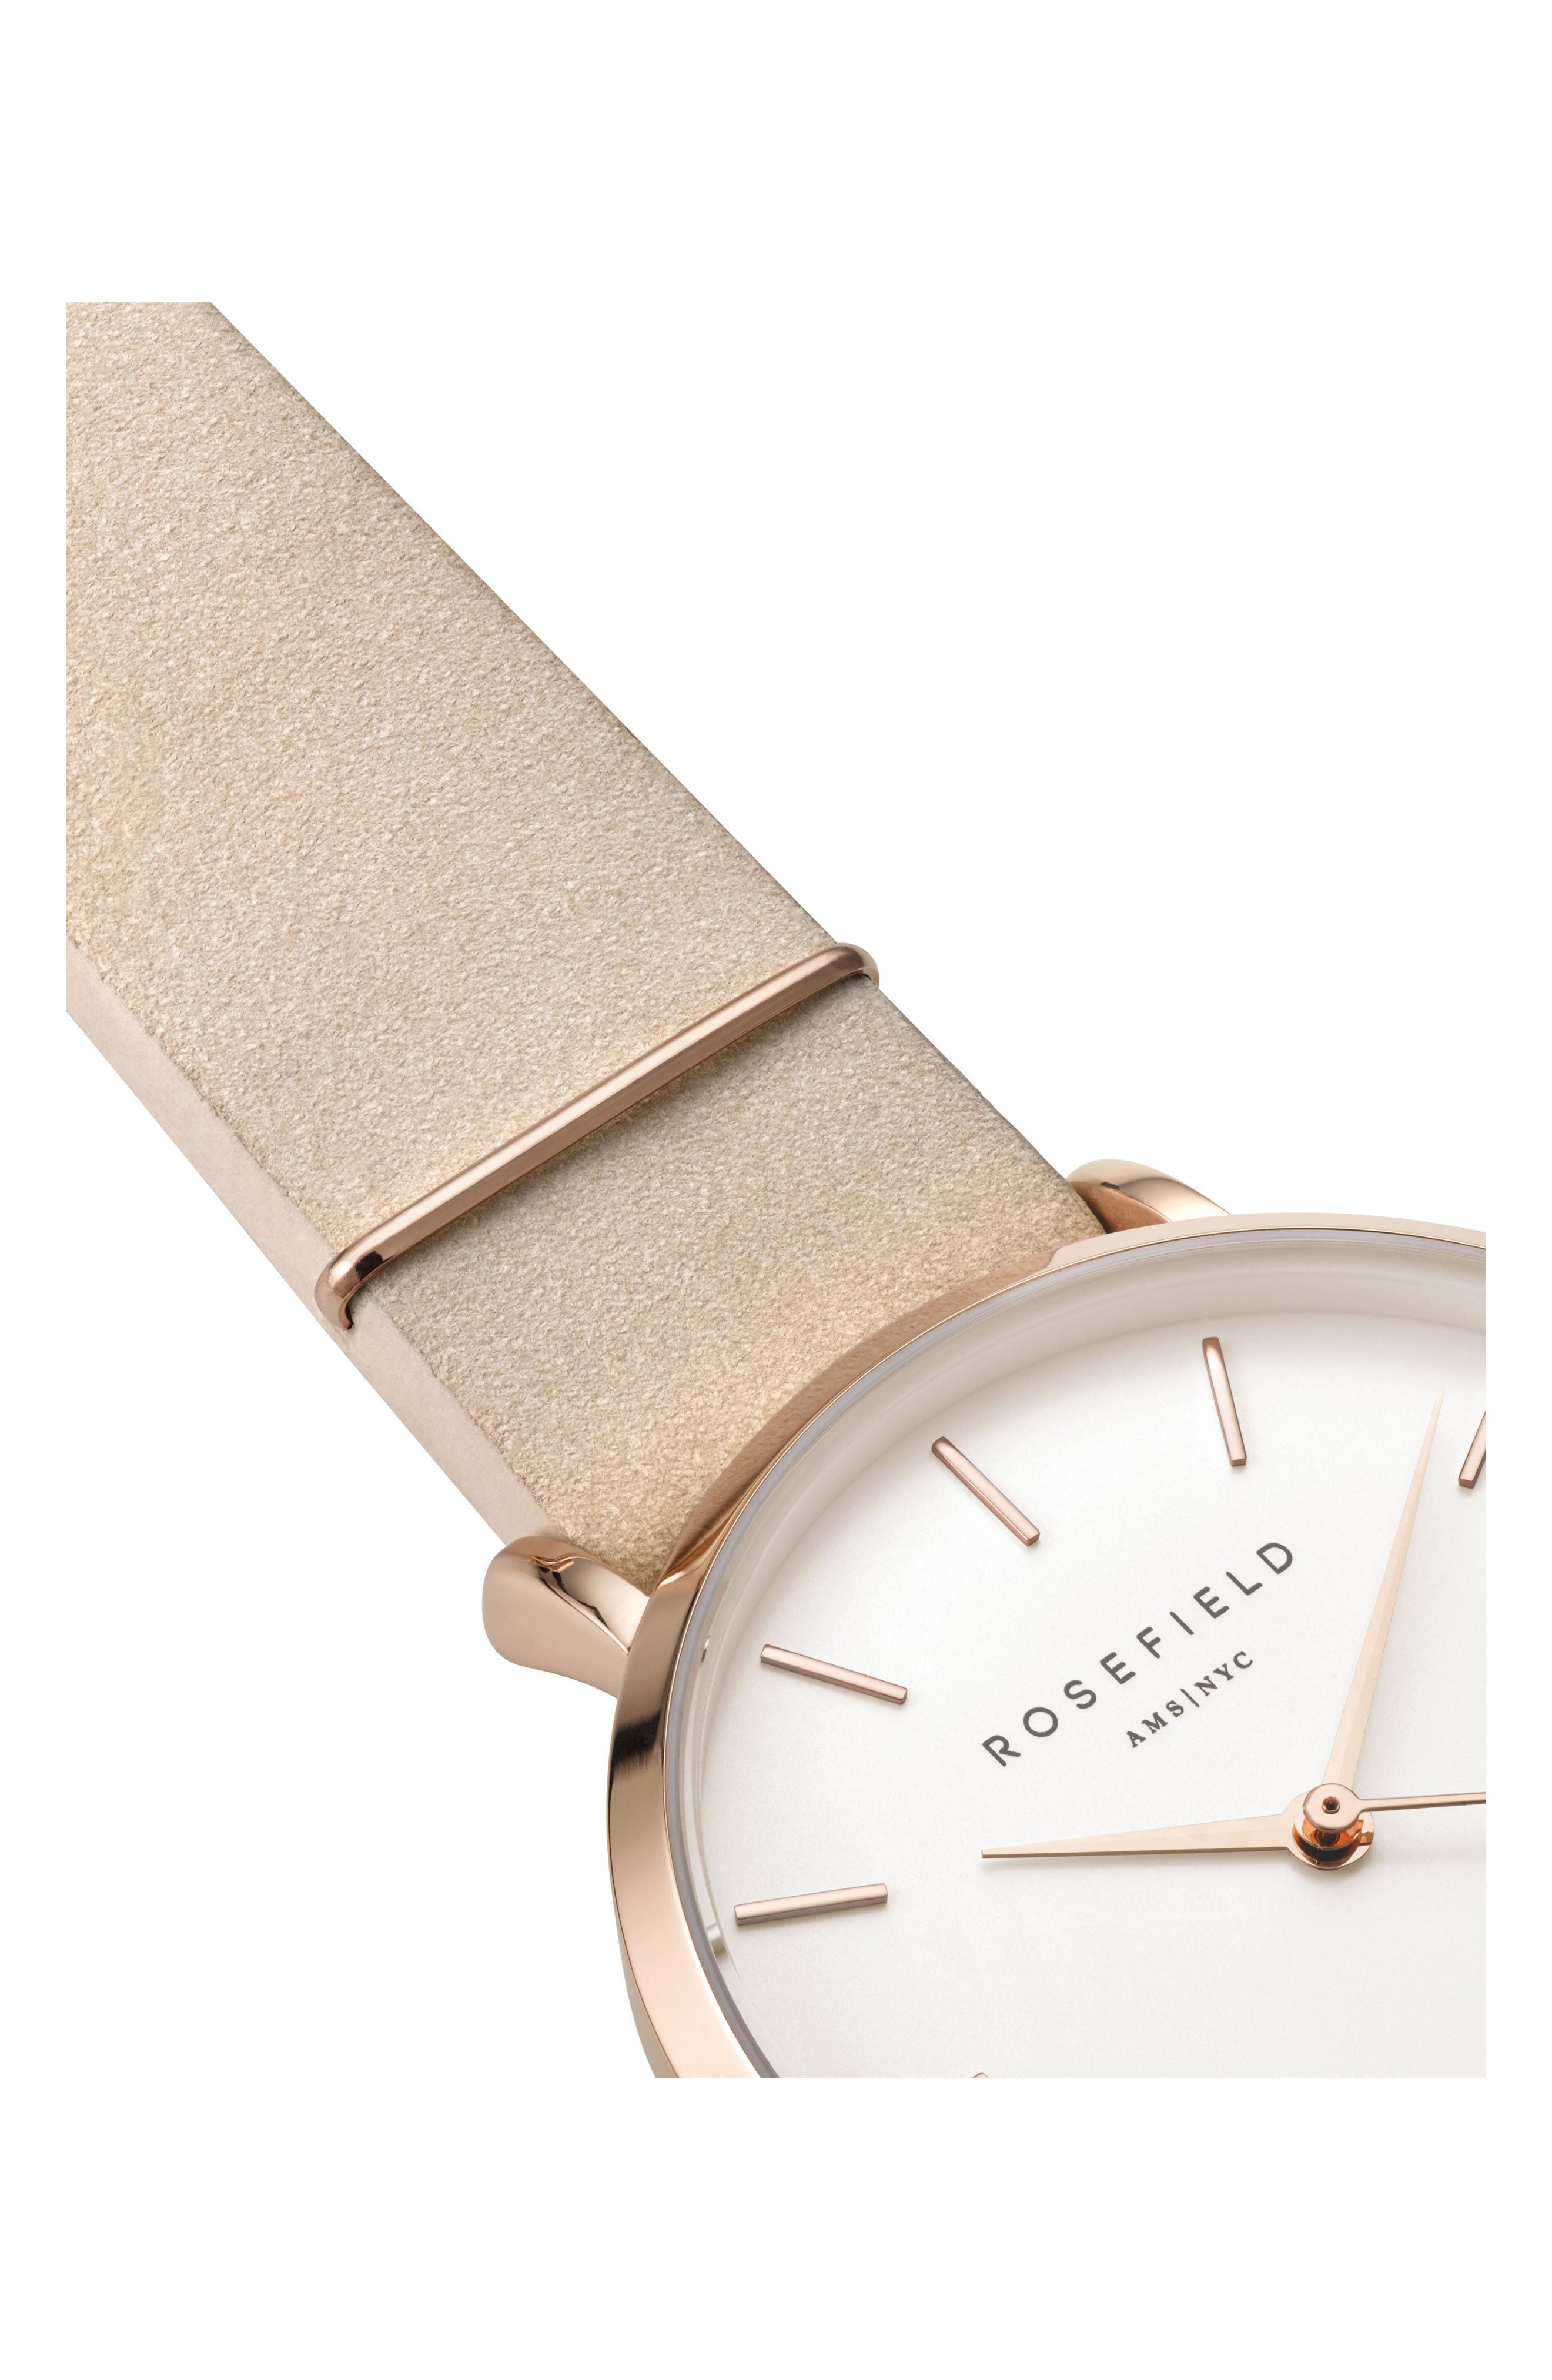 West Village Leather Strap Watch, 33mm,                             Alternate thumbnail 3, color,                             Soft Pink/ White/ Rose Gold